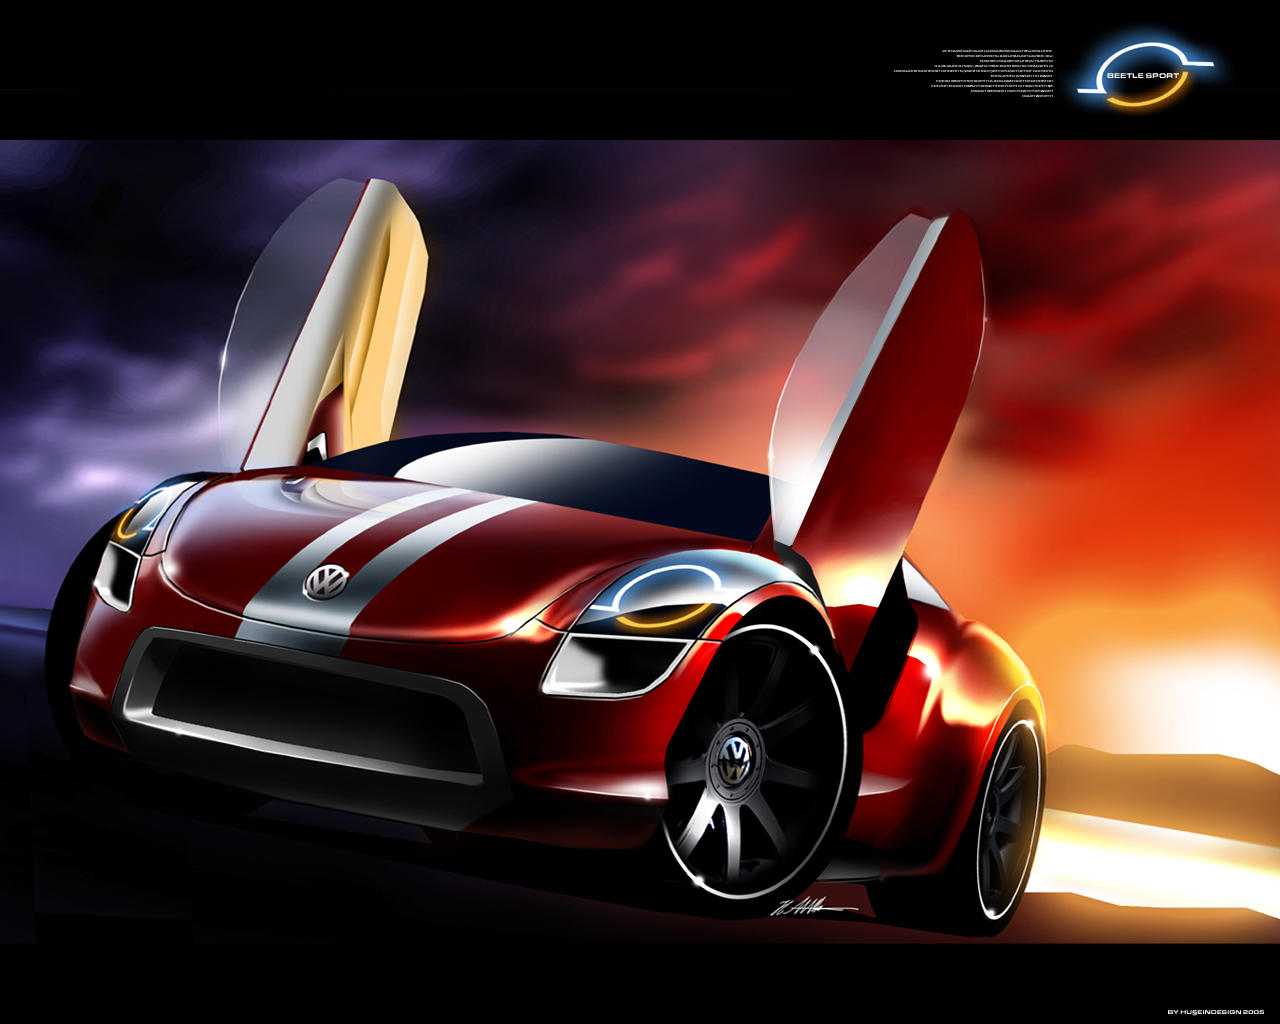 Vw Beetle Sport Concept By Husseindesign Vw Beetle Sport Concept By  Husseindesign